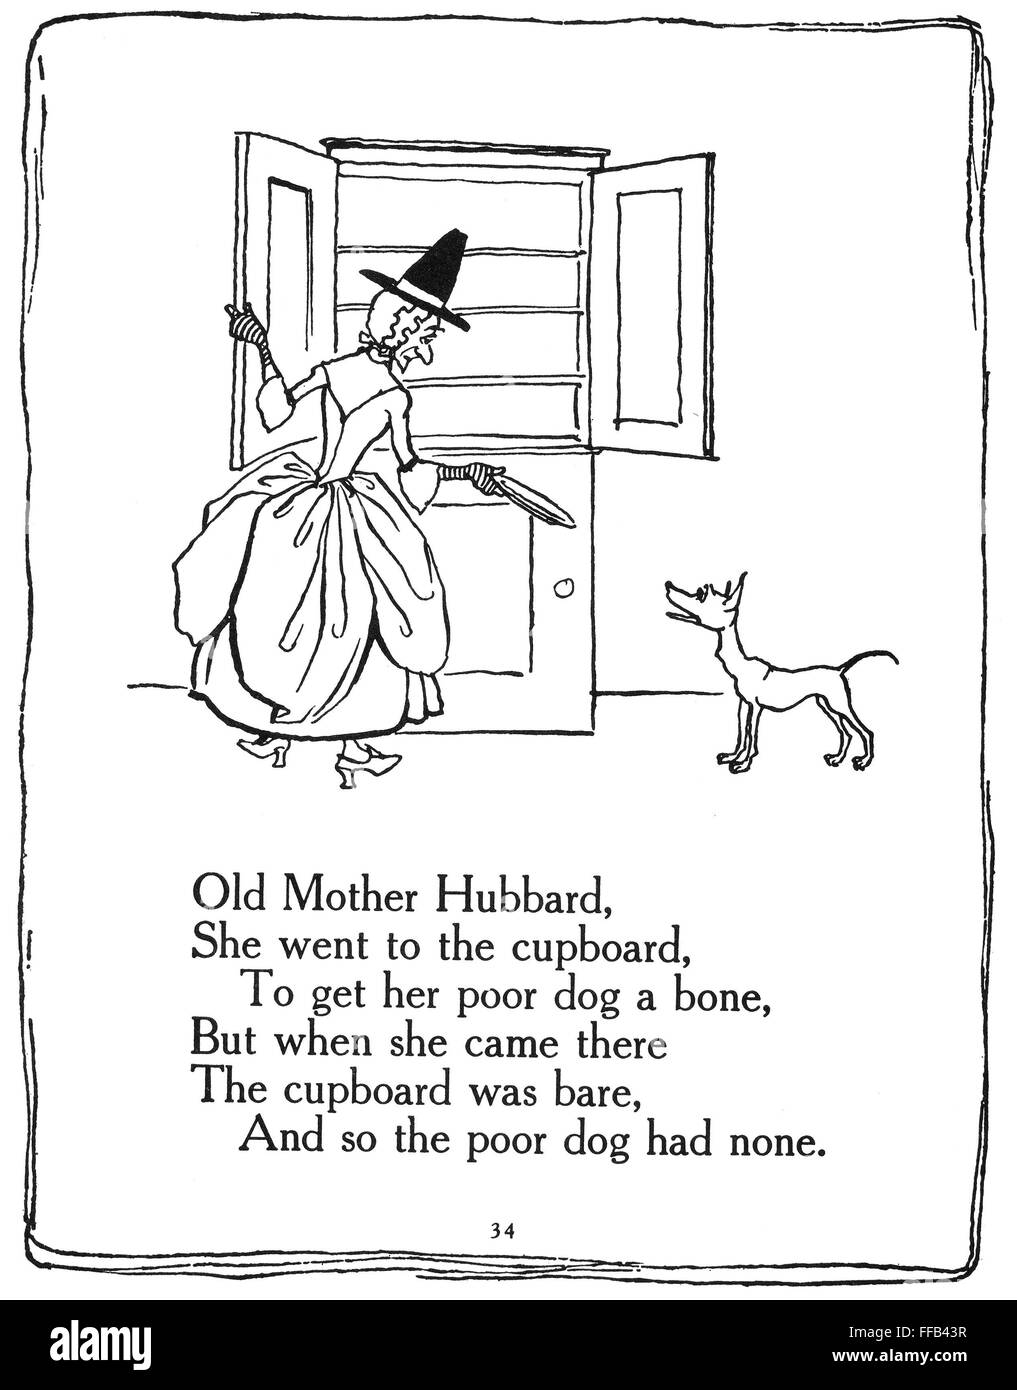 old mother hubbard 1913 npen and ink drawing by arthur rackham for an english edition 1913 of mother goose nursery rhymes